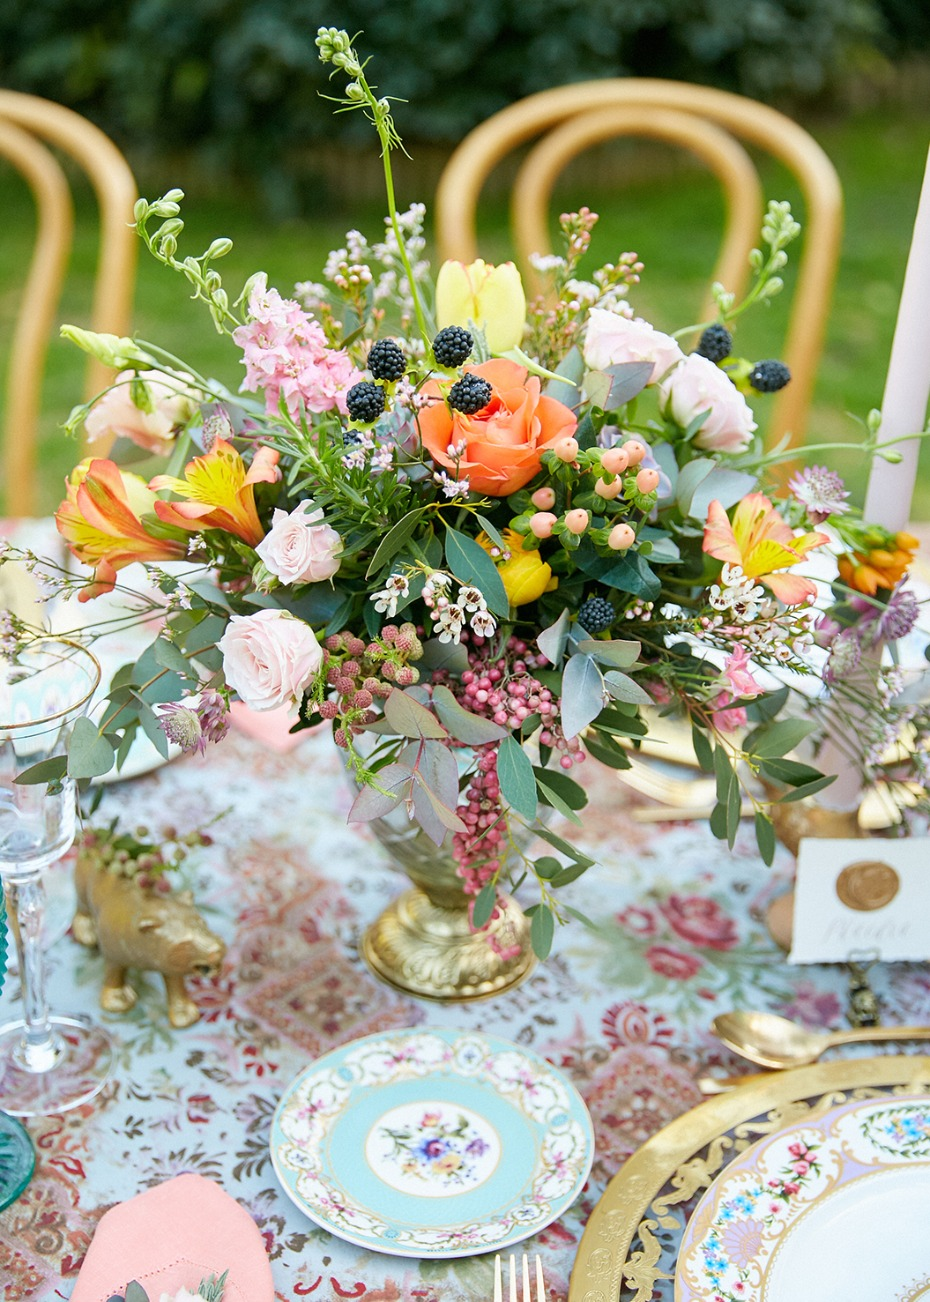 Fruit and floral centerpiece idea